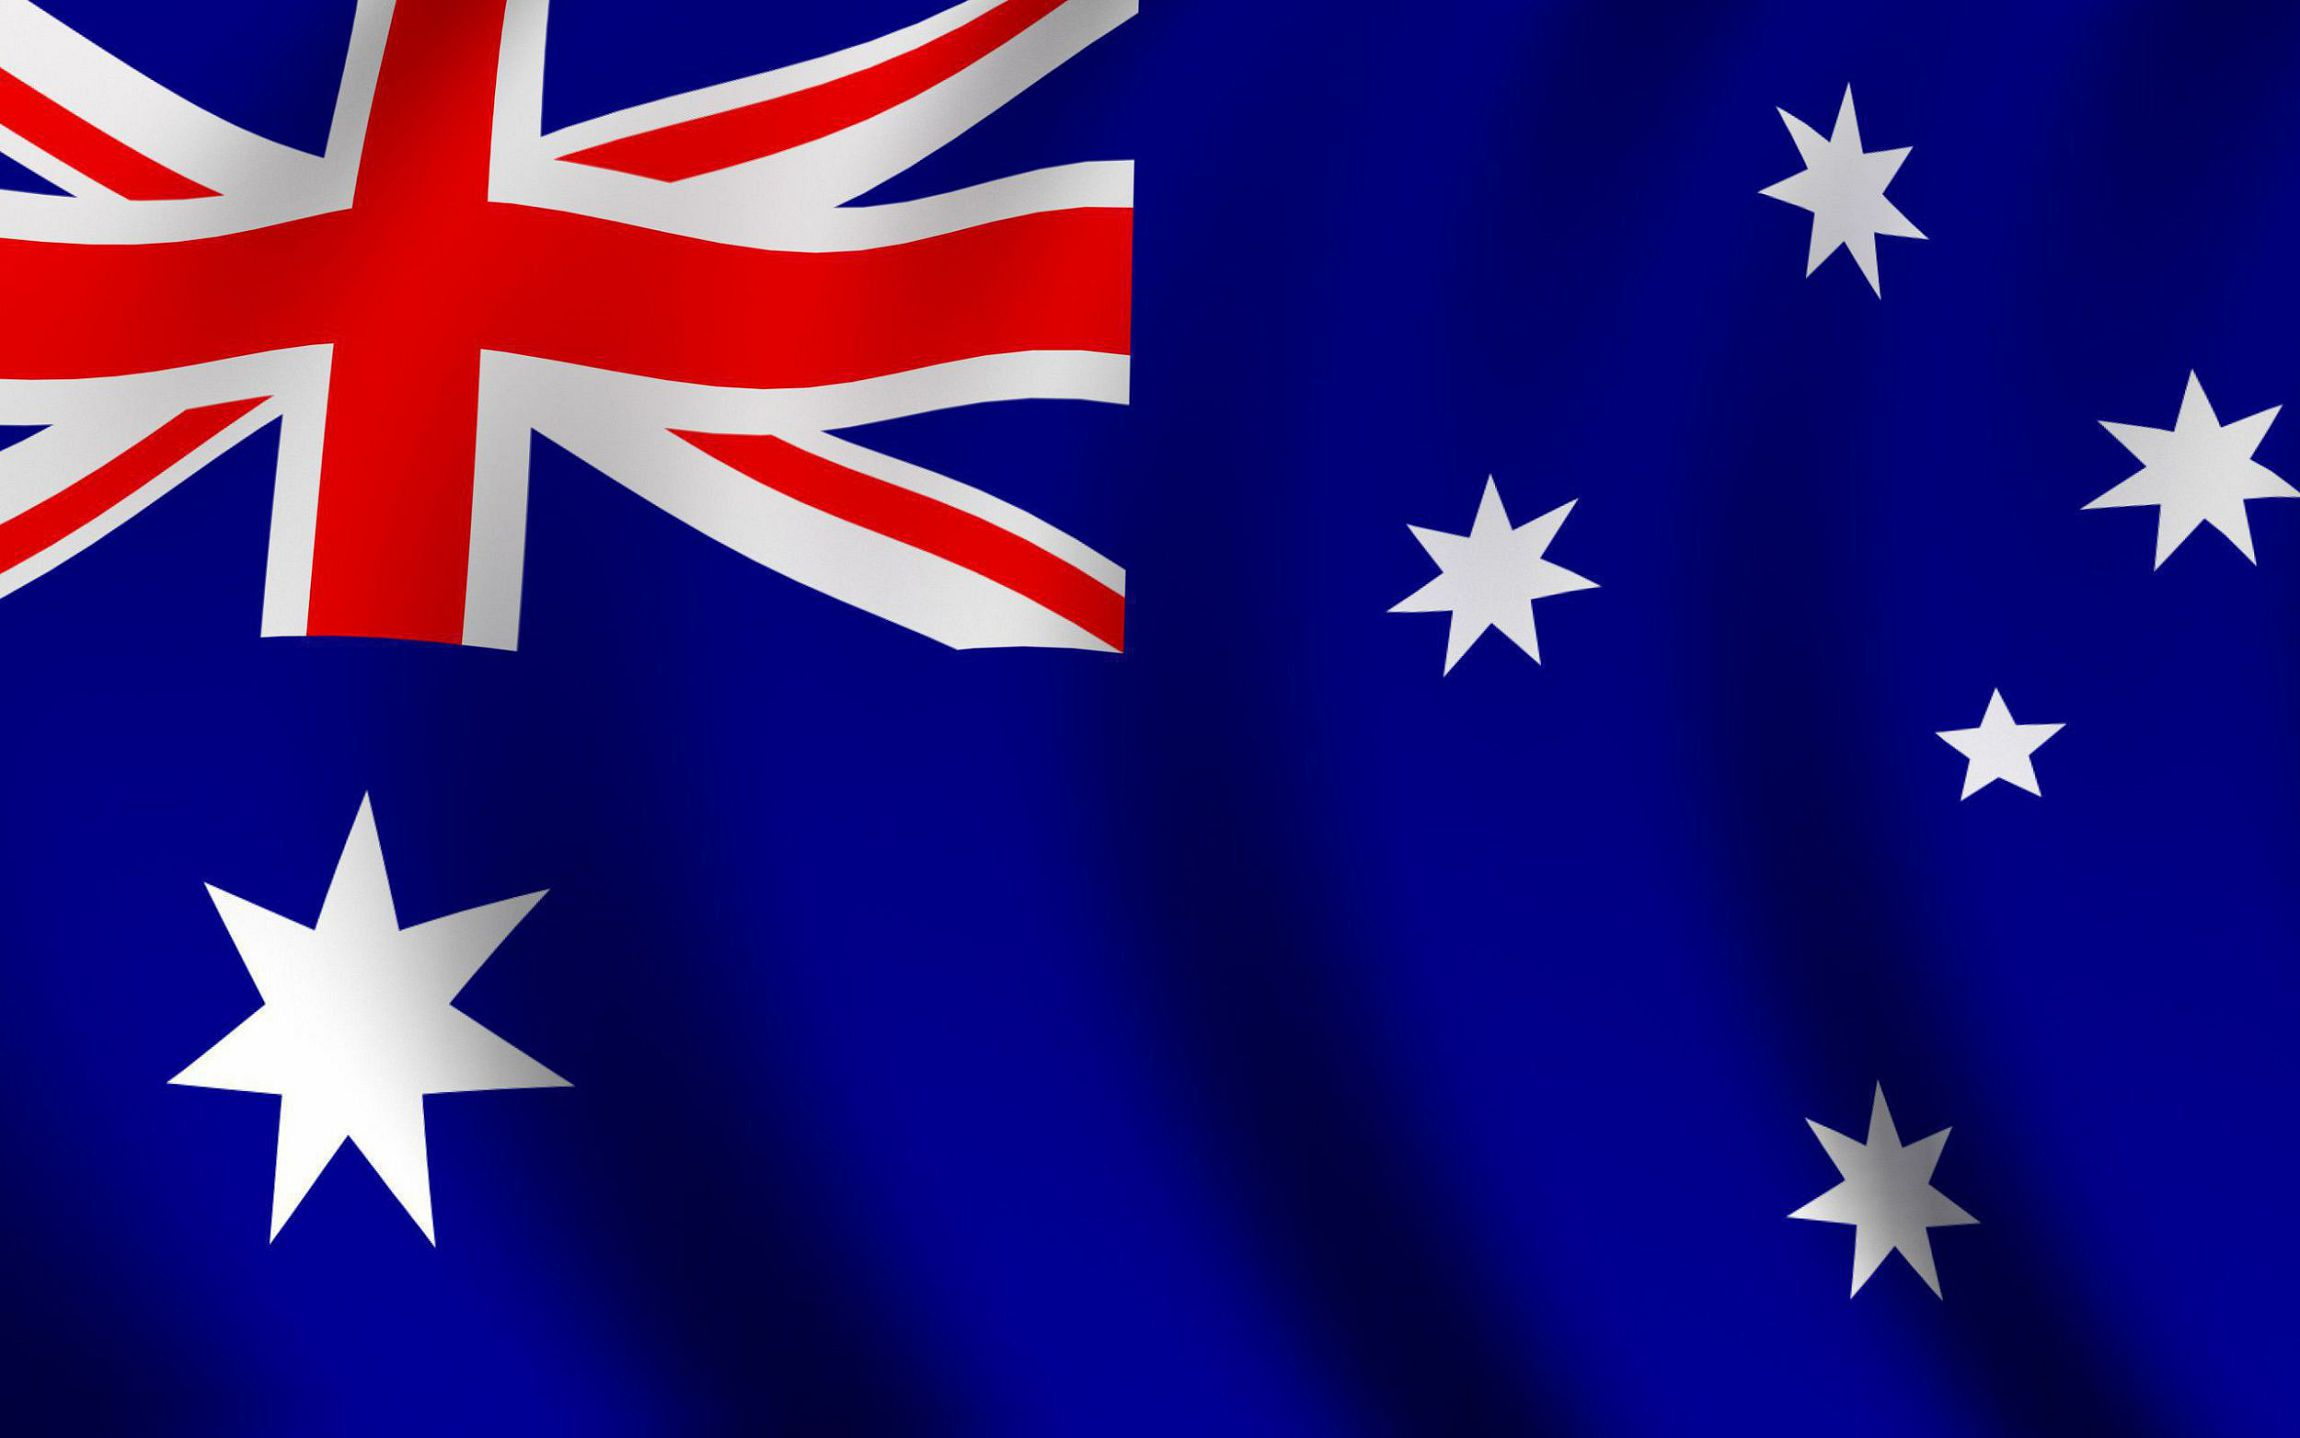 Australia Flag Wallpaper Pack